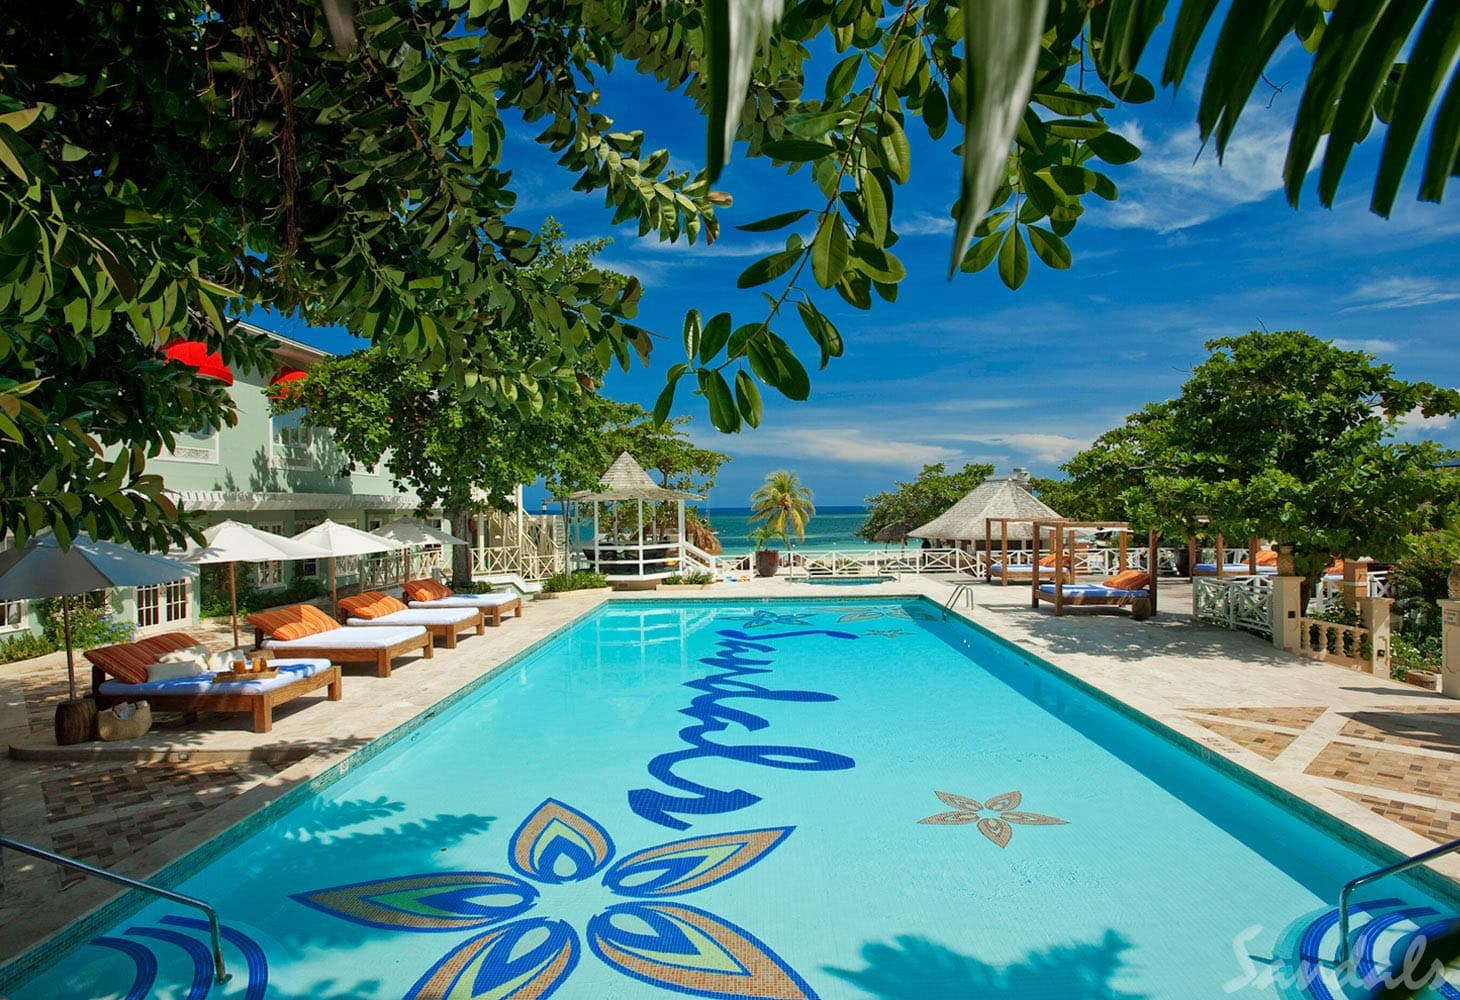 Poolside lounge beds at Sandals Montego Bay, Jamaica